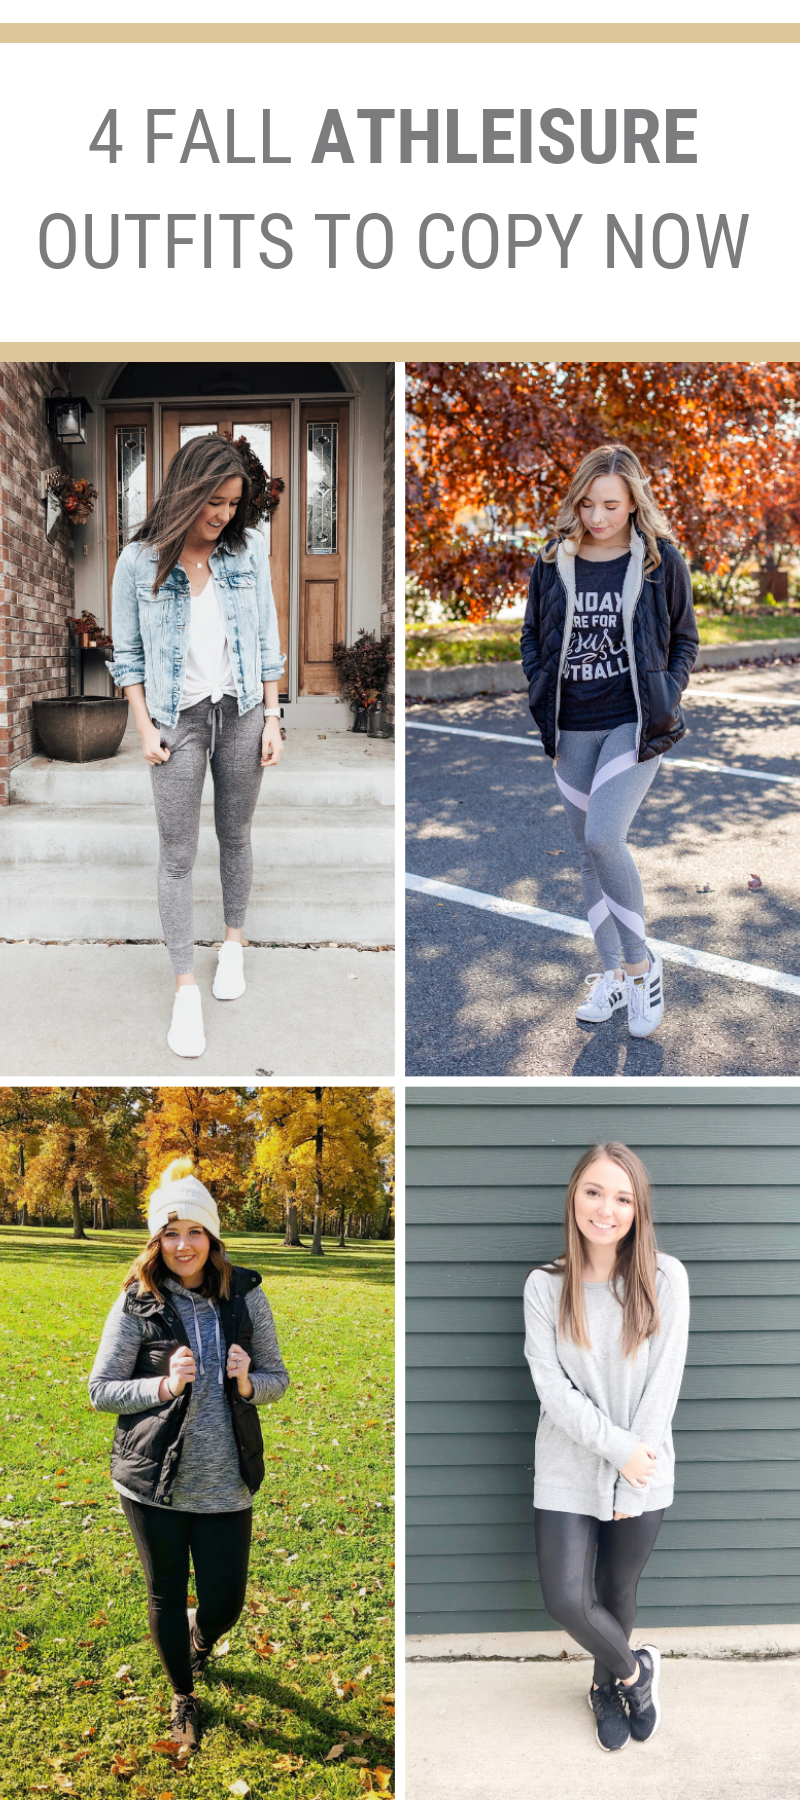 4 Fall Athleisure Outfits To Copy Now